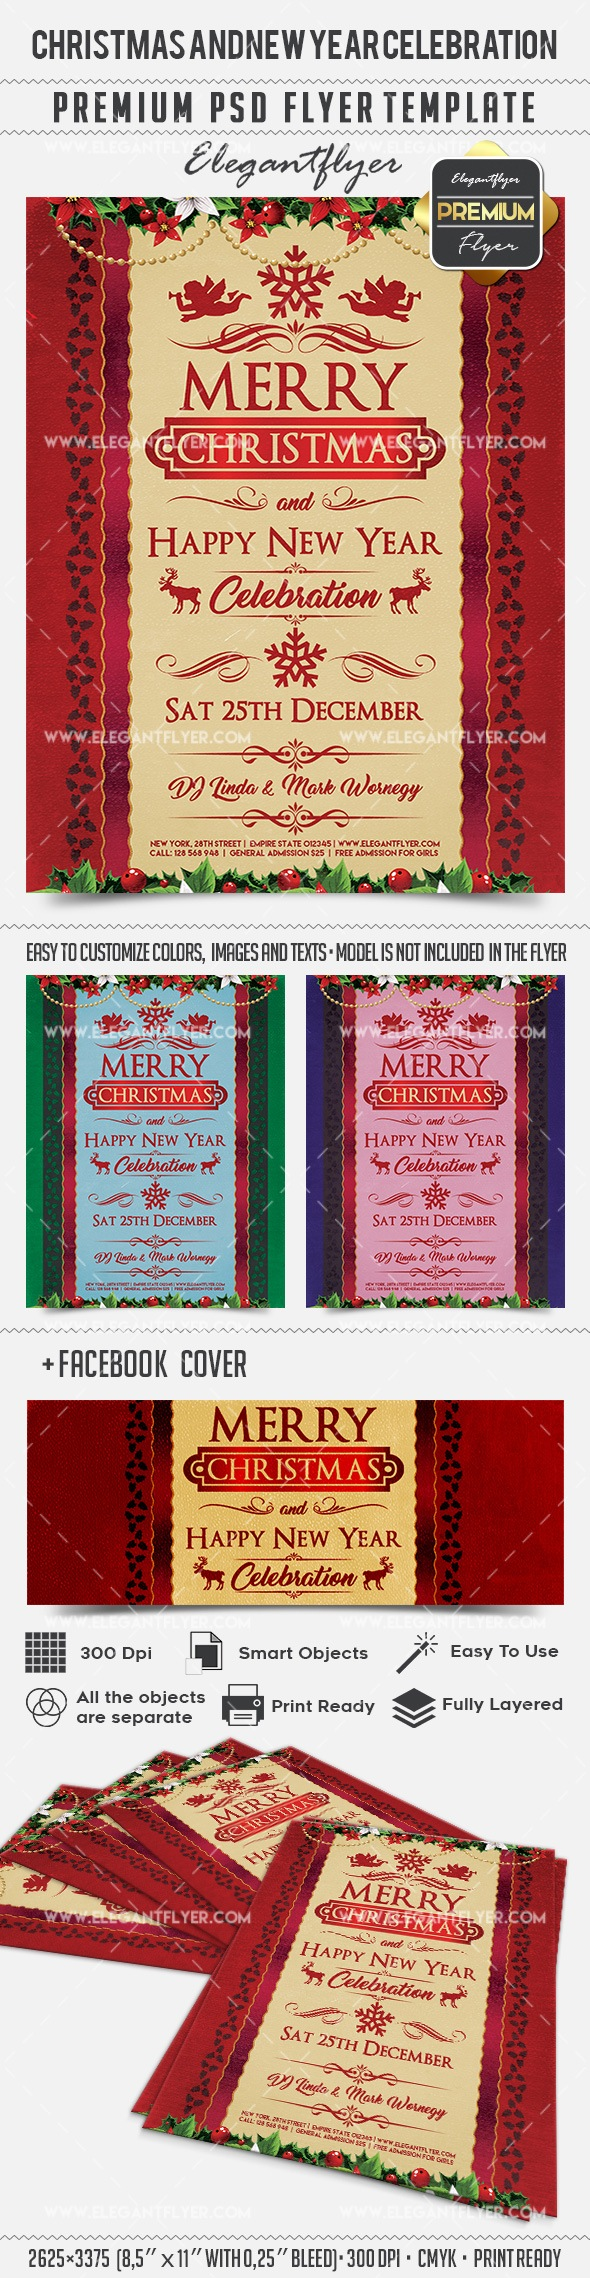 Christmas and New Year Celebration – Flyer PSD Template + Facebook Cover